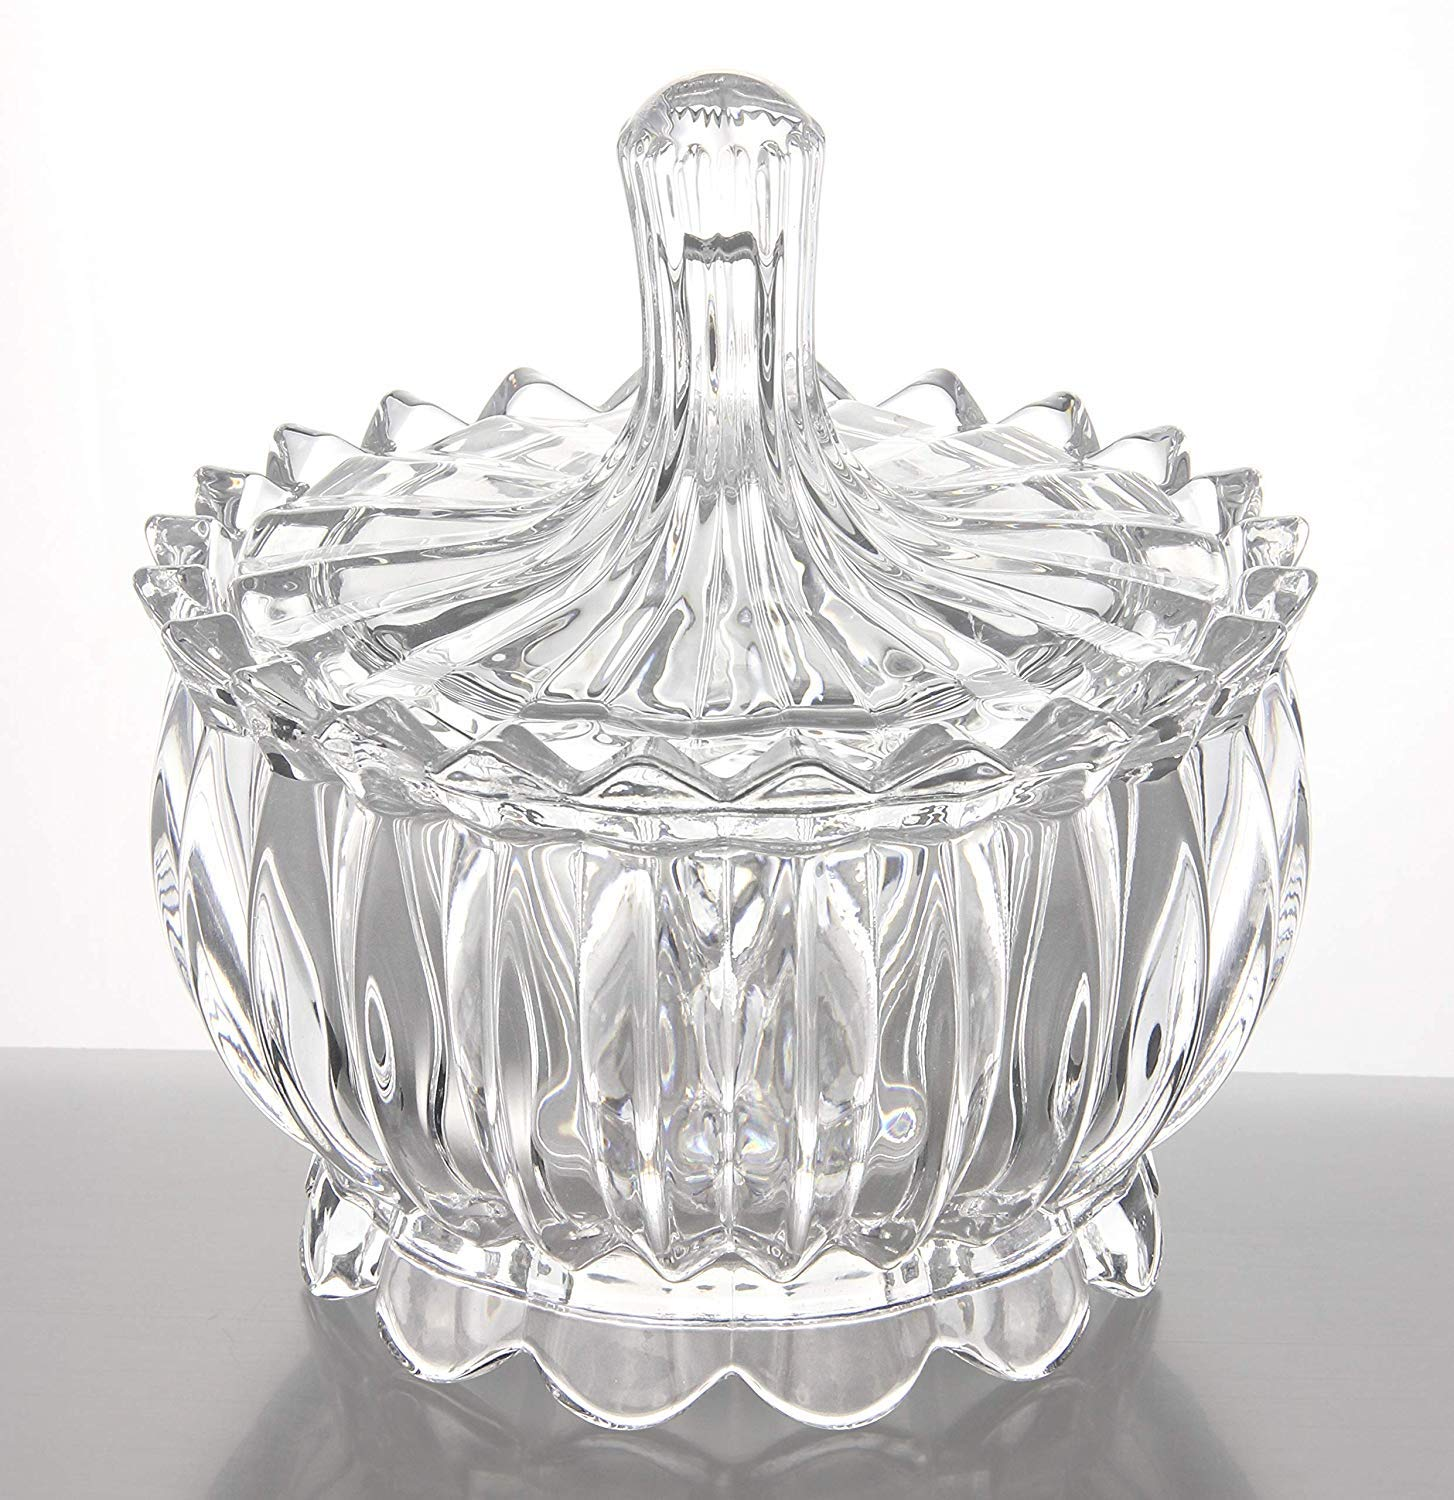 New 2018 Crystal Castle Design Glass Covered Storage Jar, Candy Dish Box